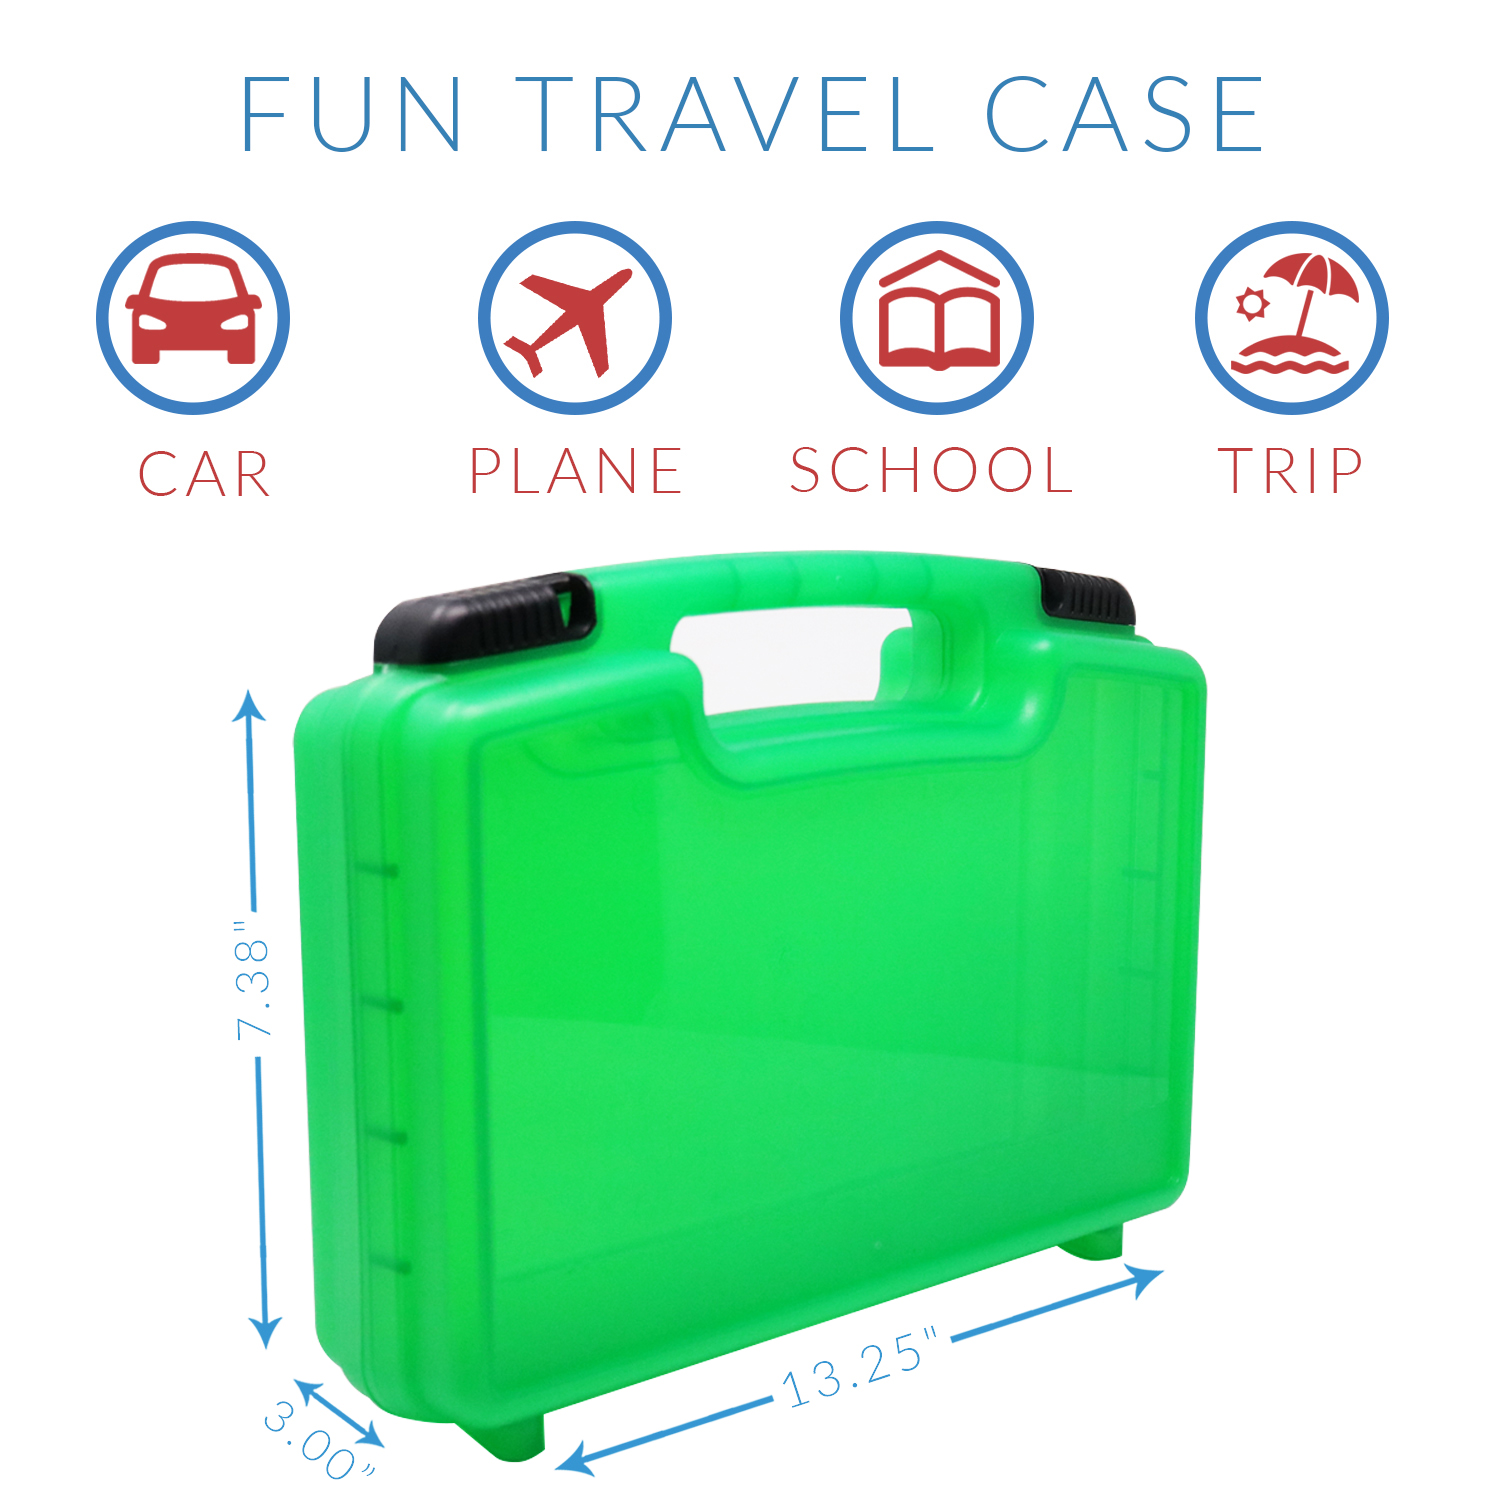 Accessories For Kids by LMB Toy Storage Carrying Box Figures Playset Organizer Life Made Better Daniel Tiger Case